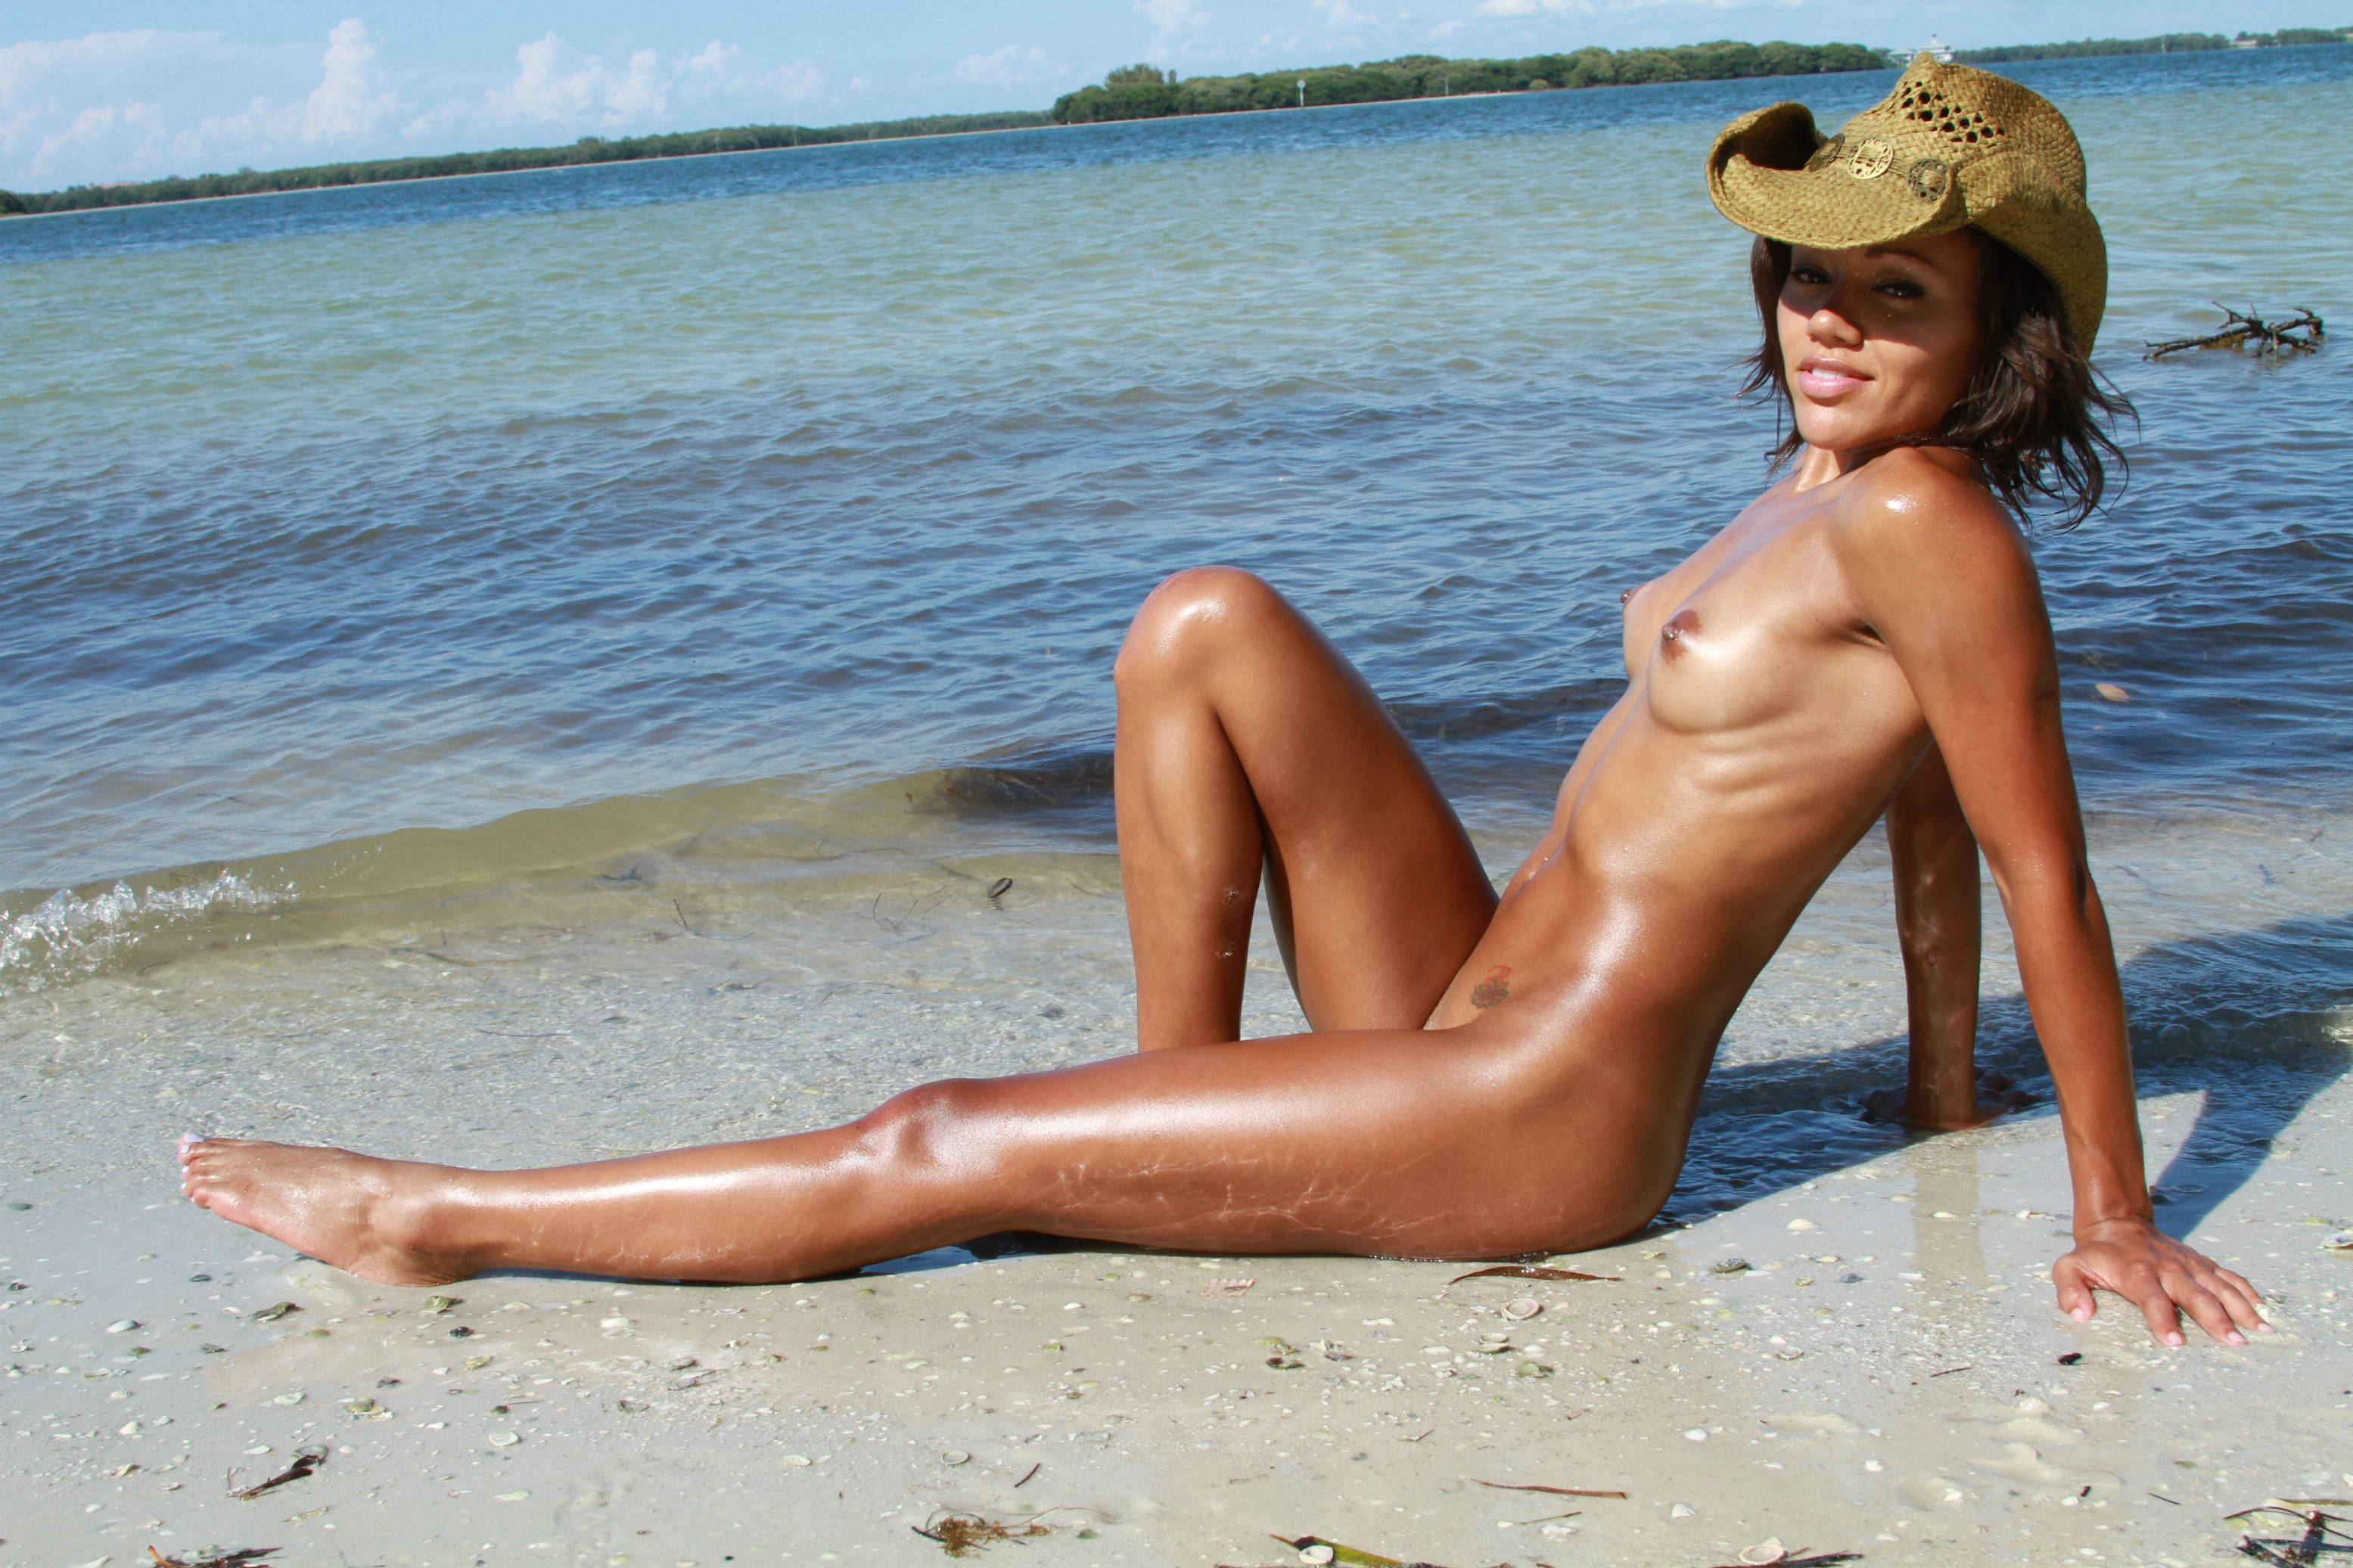 Nude Caribbean Women Images